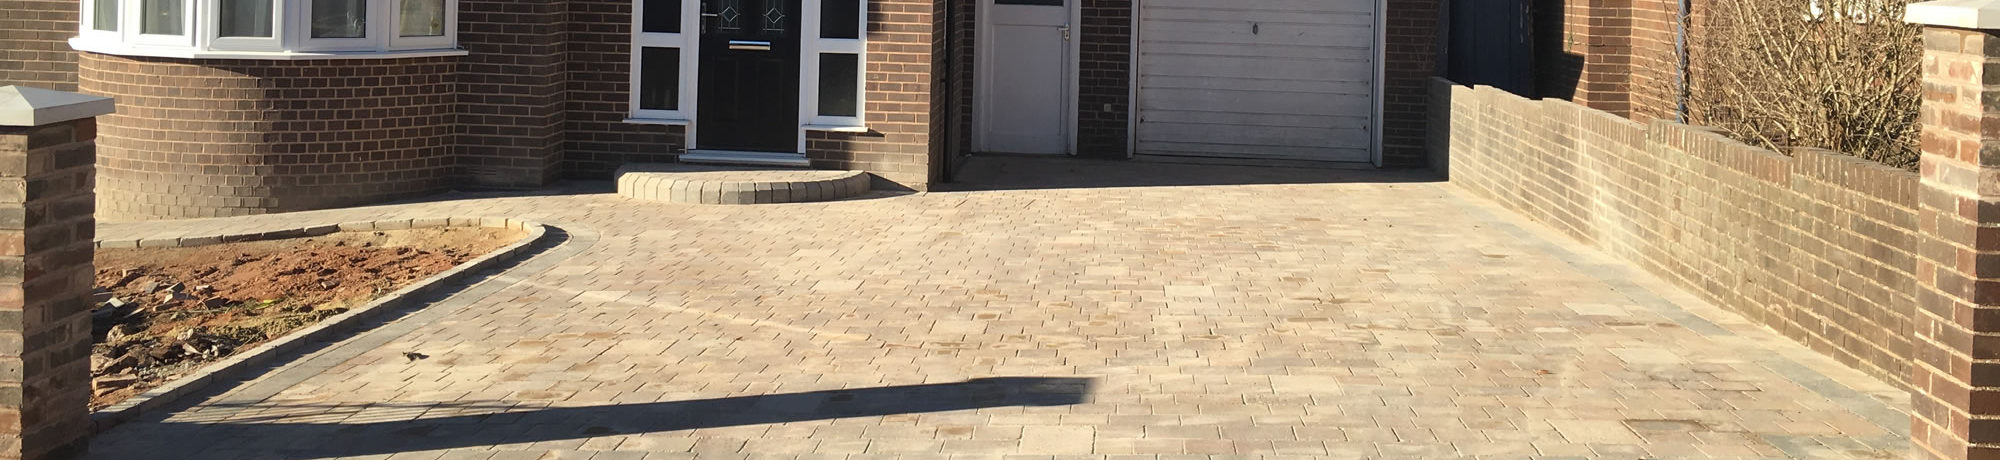 banner-home-driveways